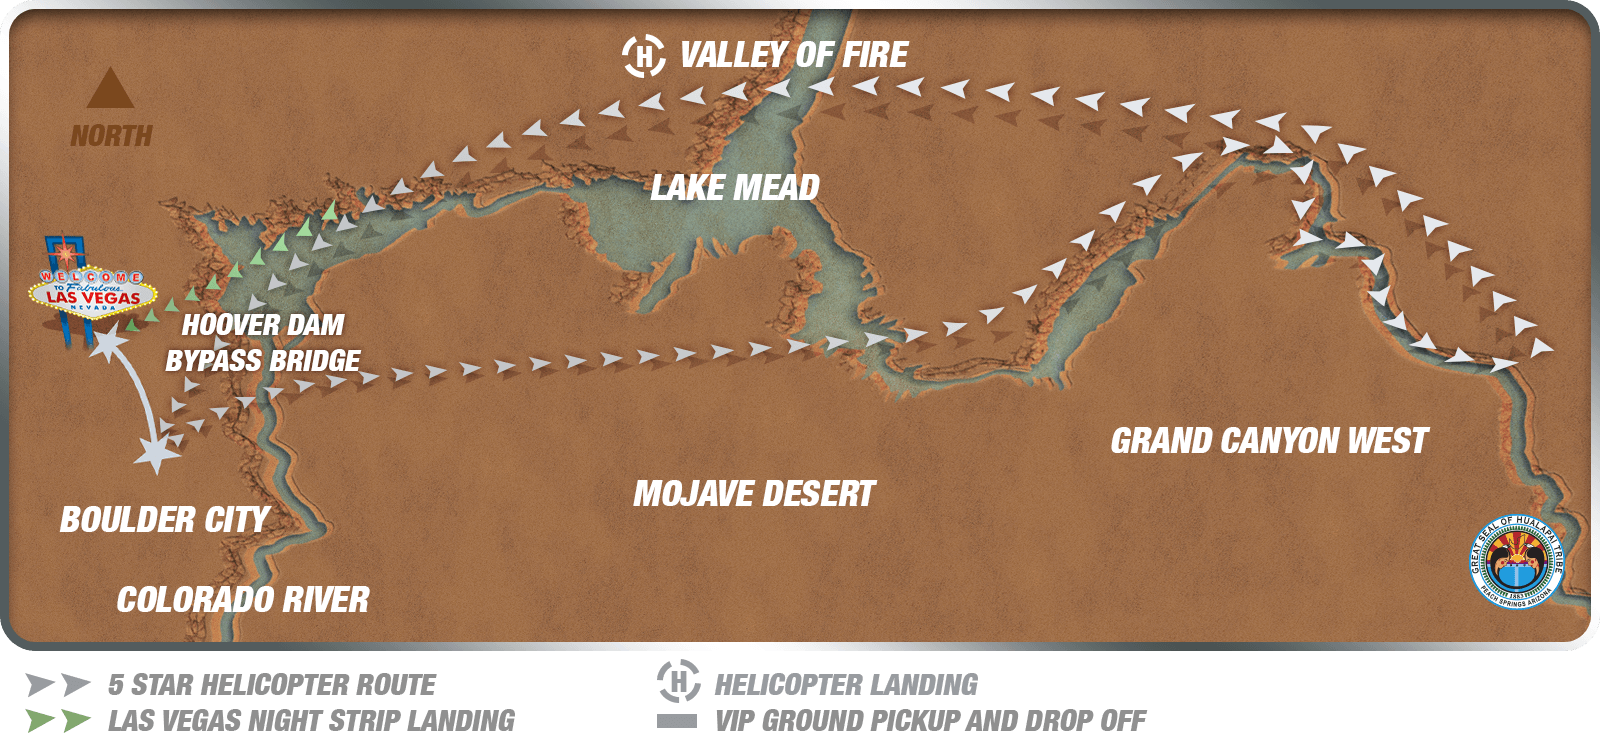 Grand Lake Fire Map.Grand Canyon And Valley Of Fire Helicopter Champagne Land Tour